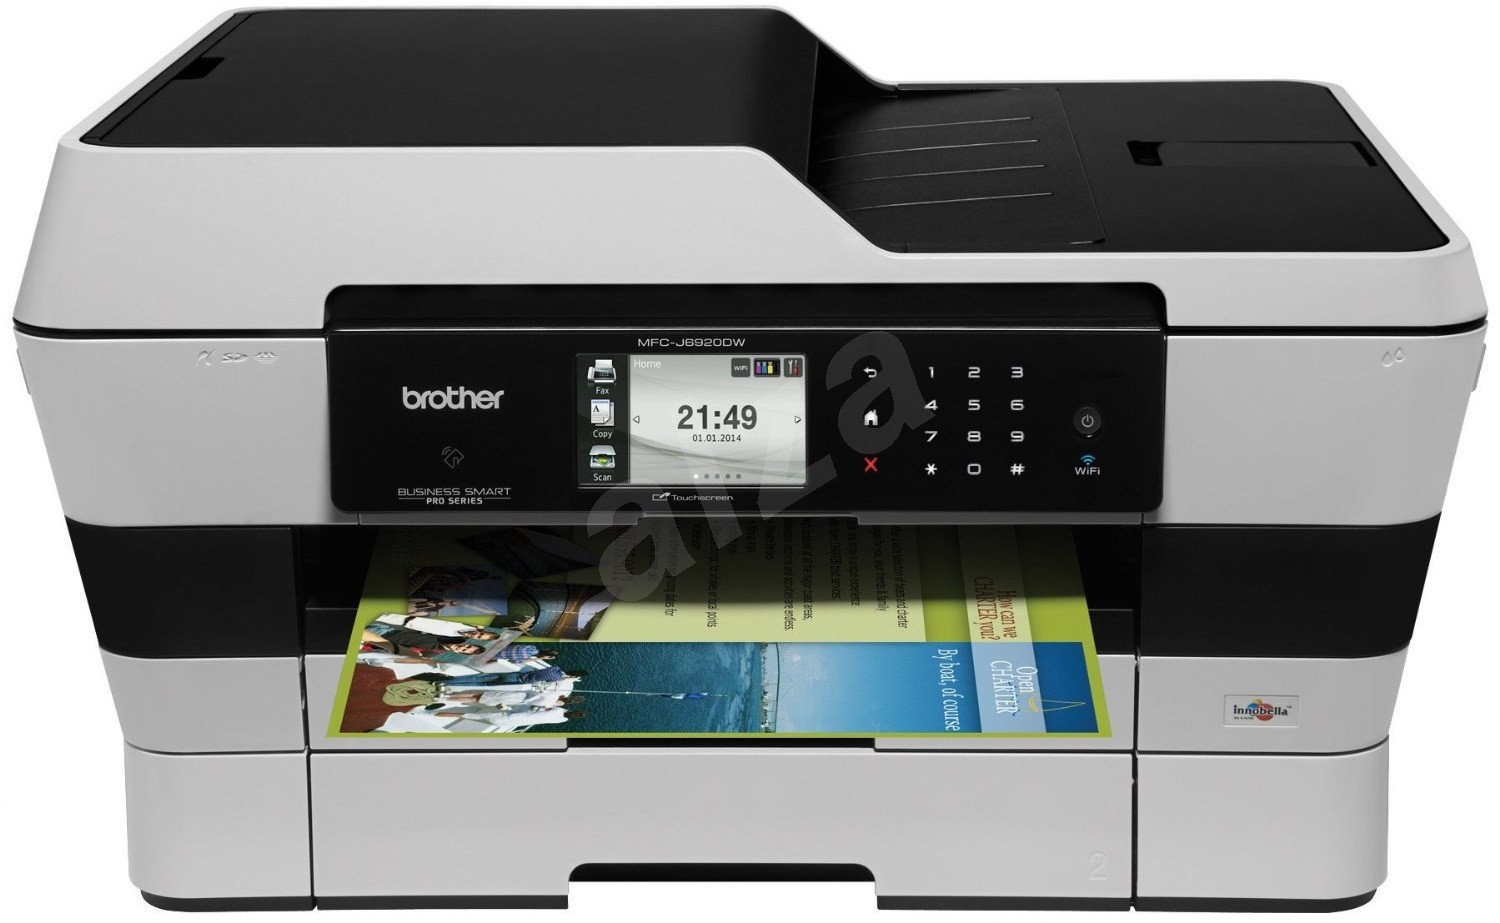 how to connect to brother priner using wifia